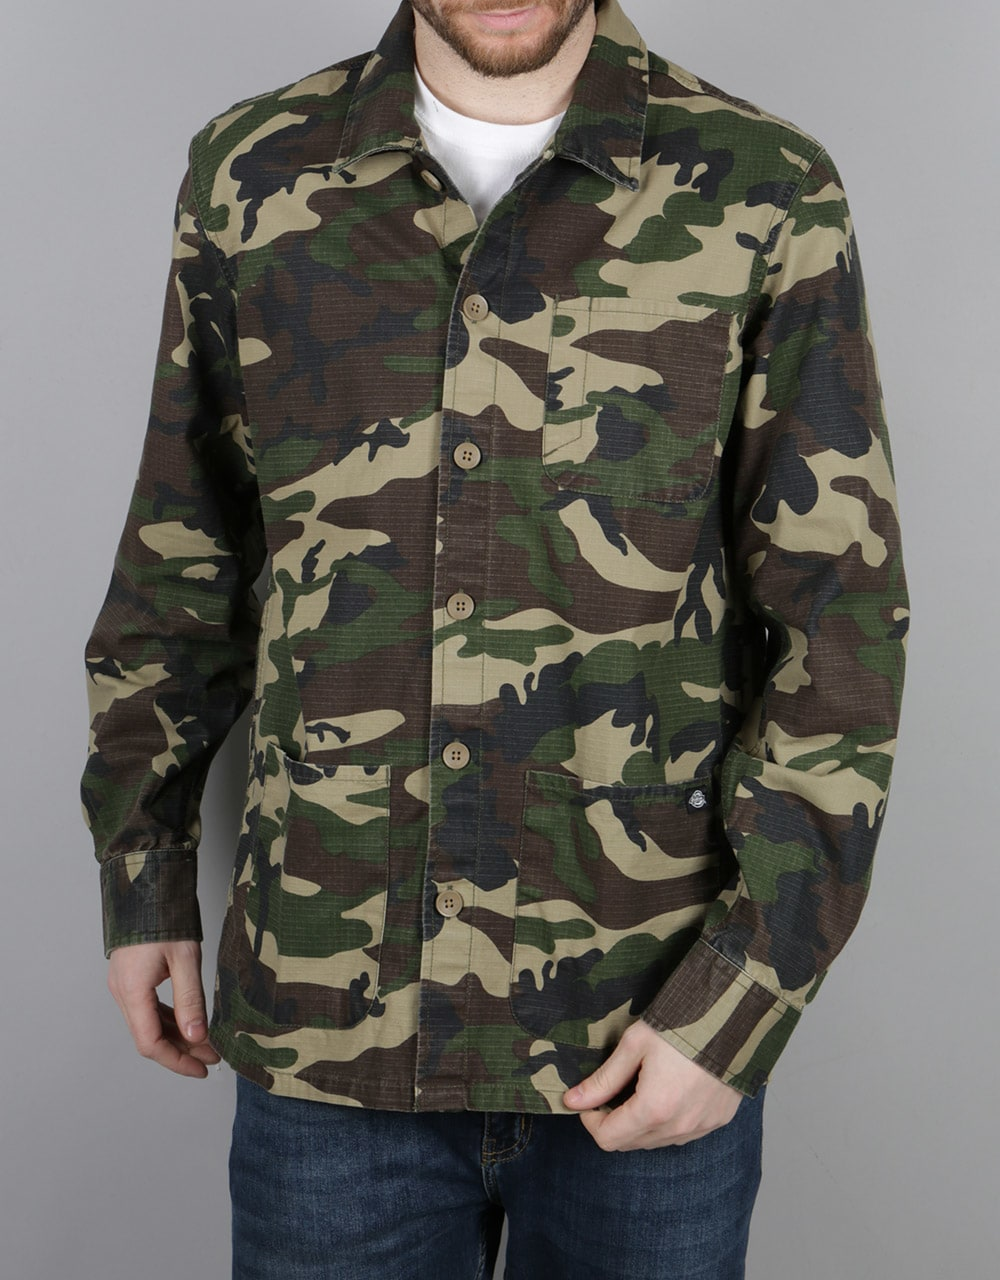 Dickies kempton l s shirt camouflage long sleeve skate for Dickey shirts clothing co